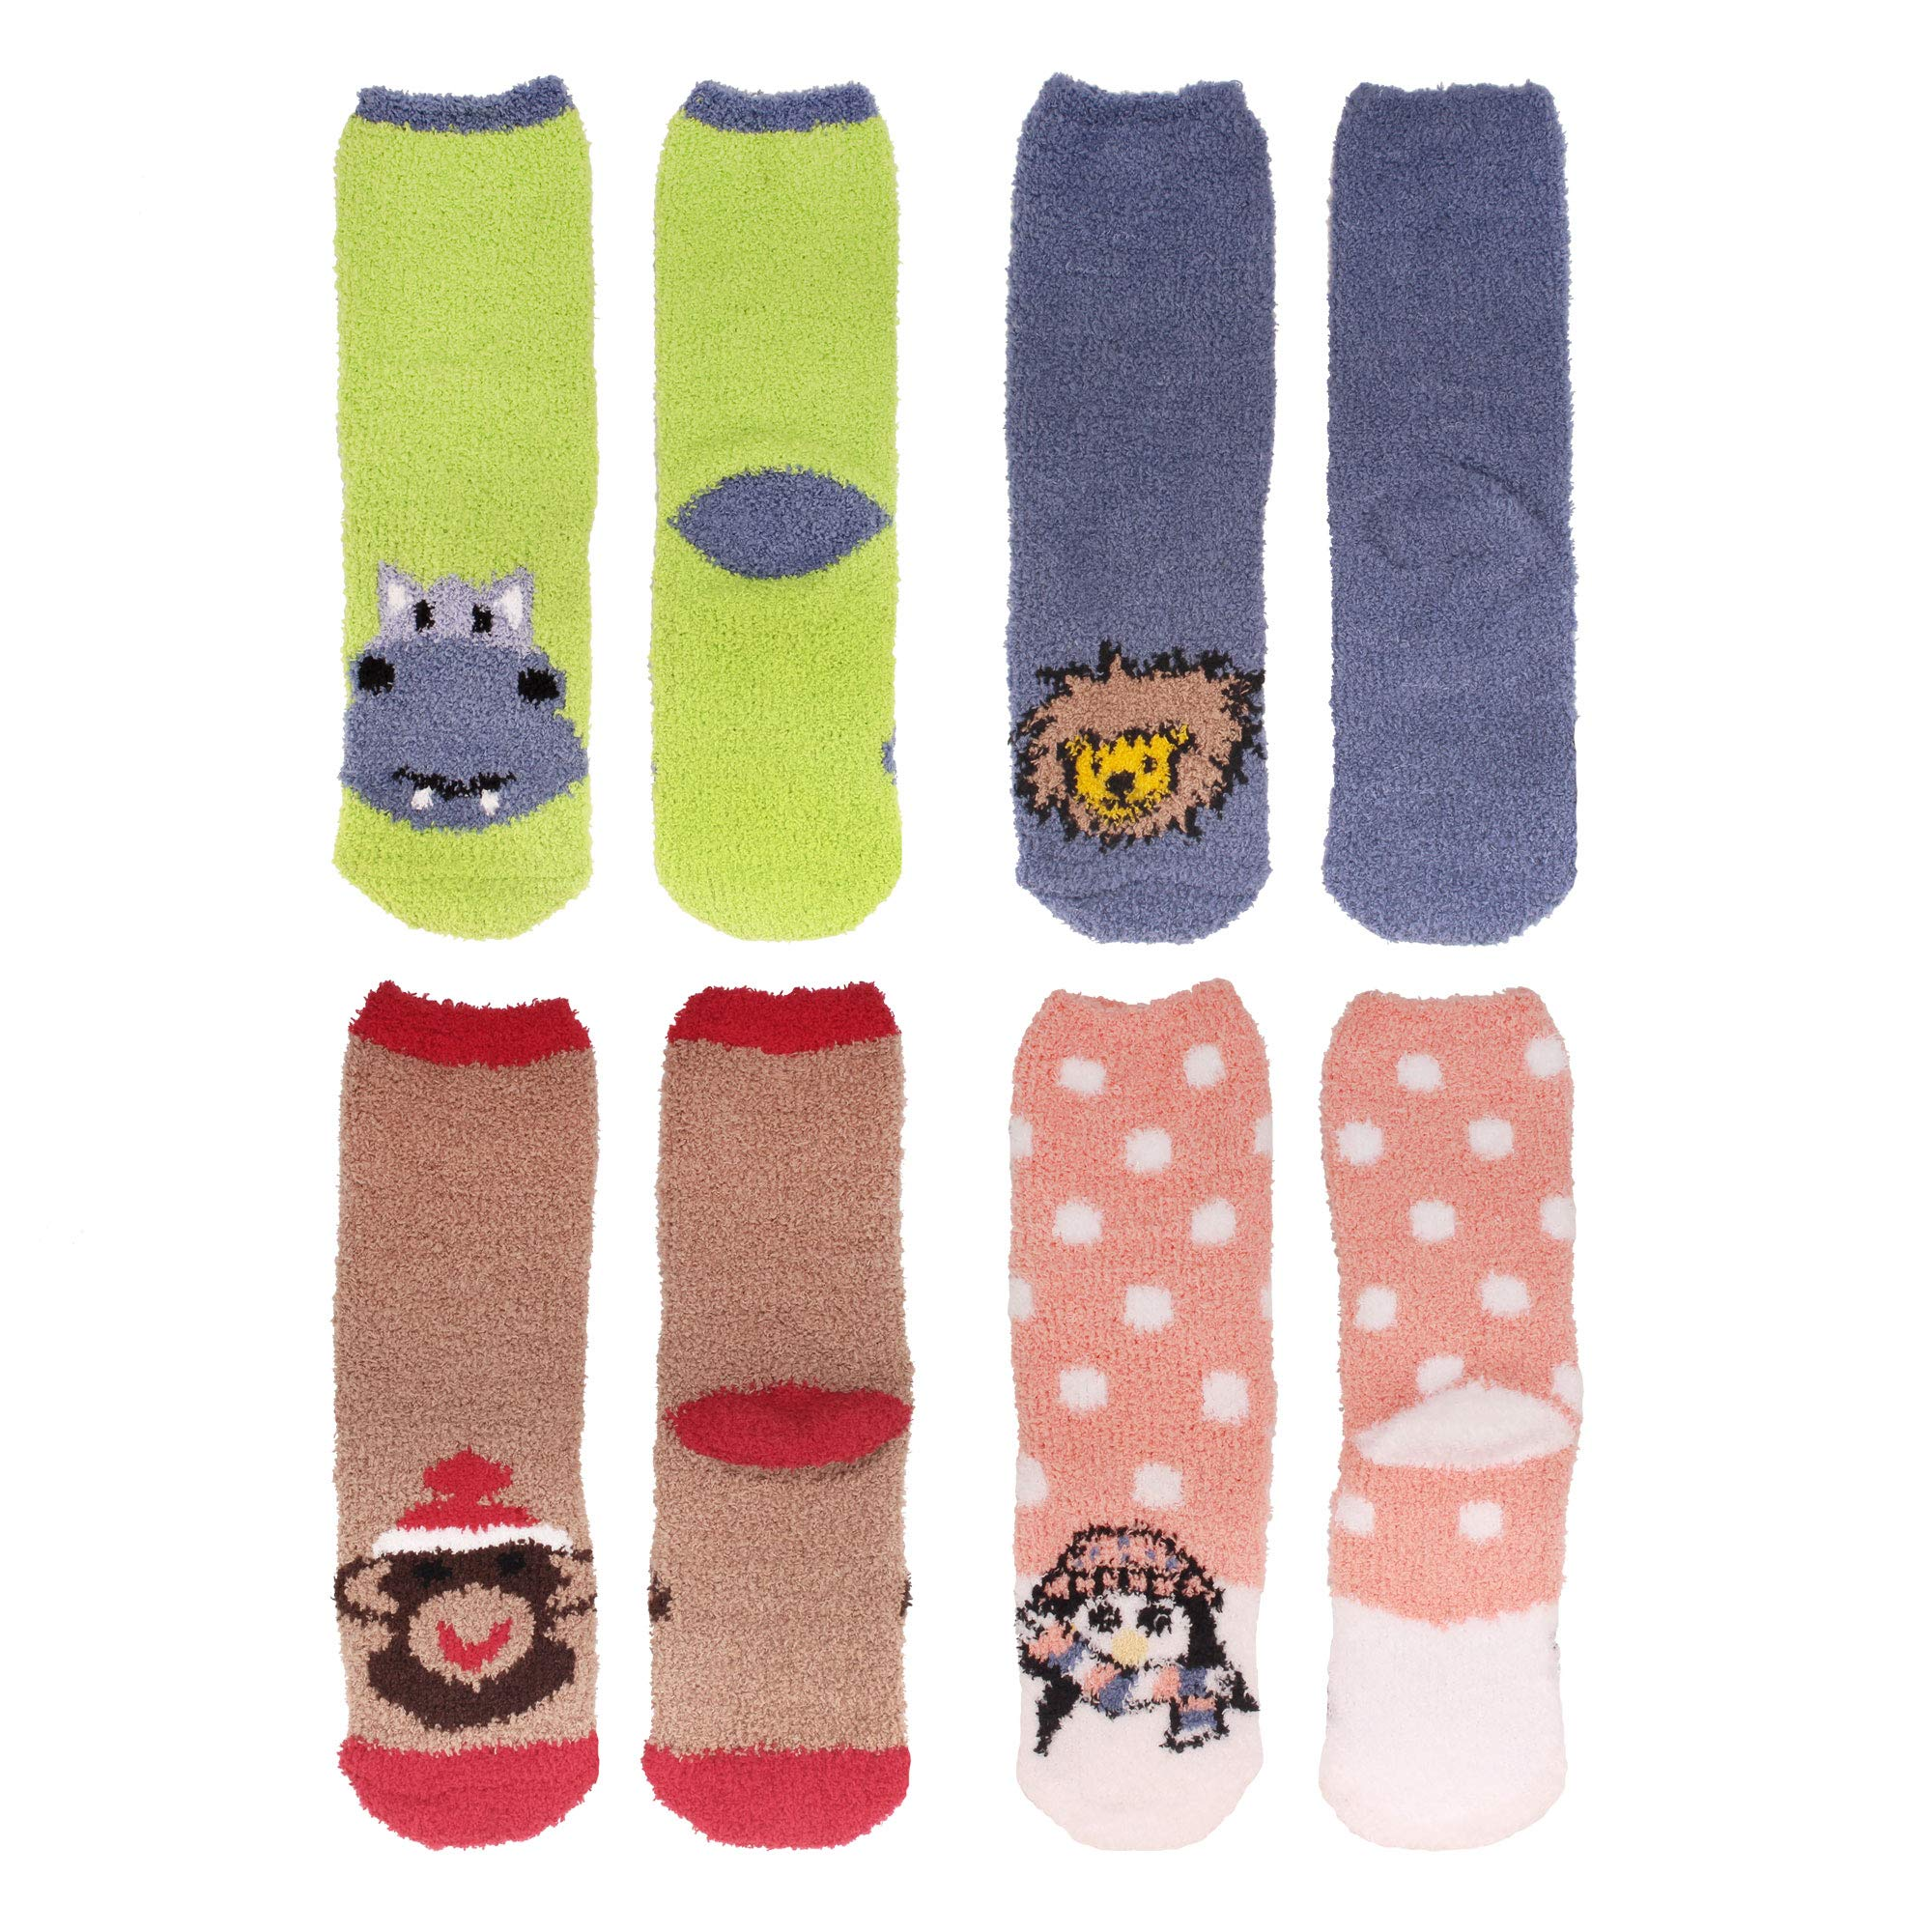 Women's Super Soft Warm Microfiber Fuzzy Cozy Animal Socks